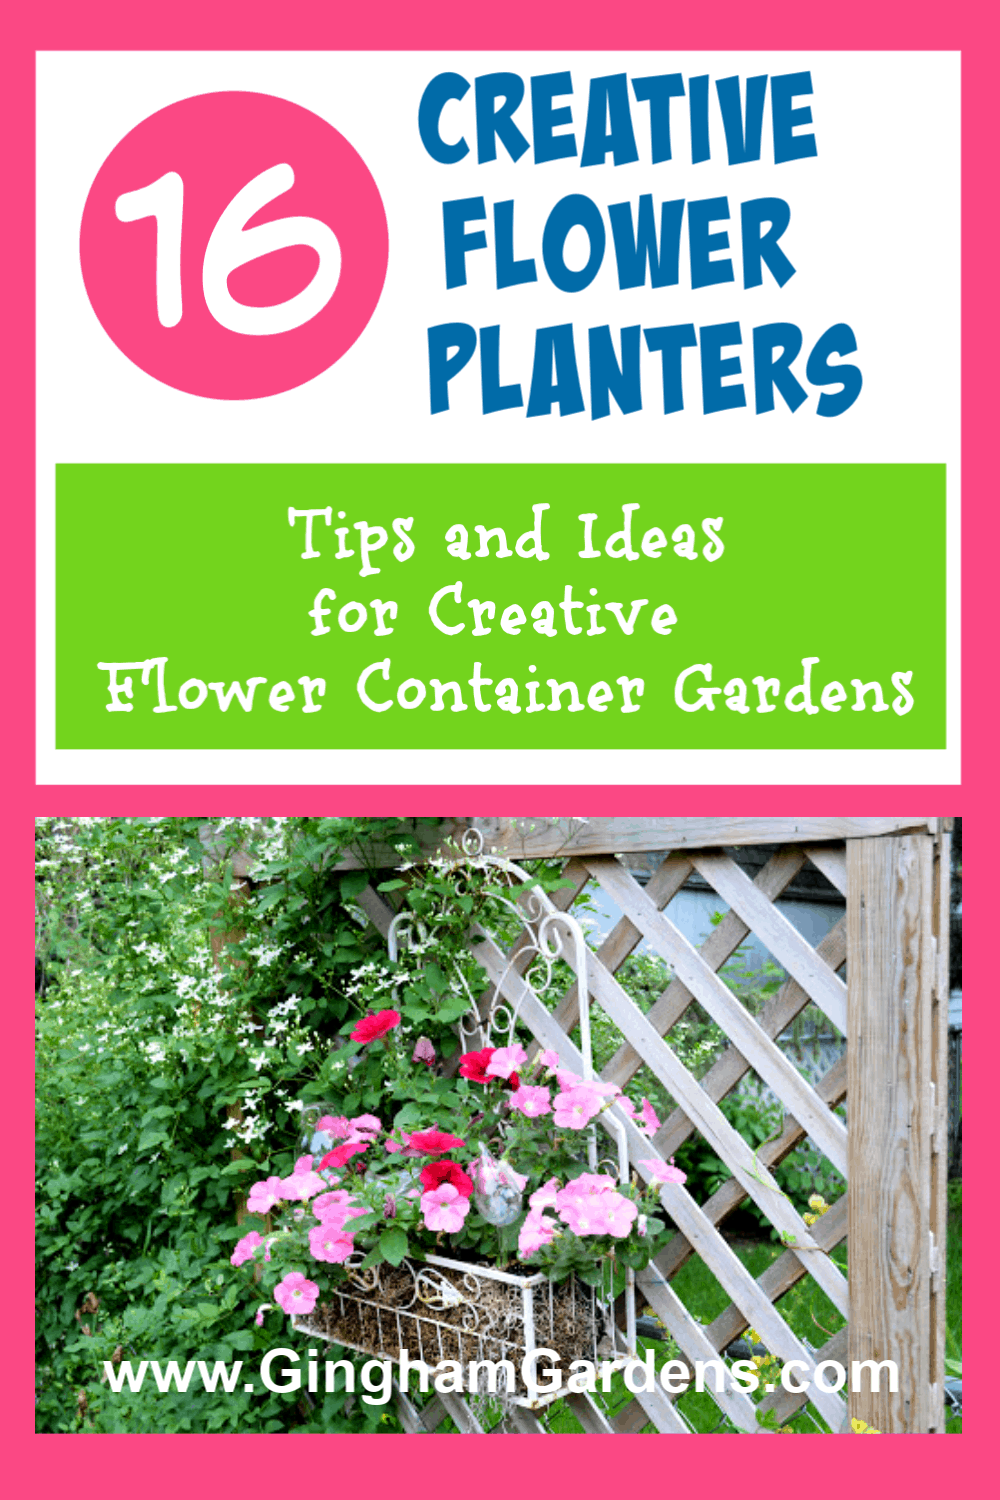 Image of a Flower Garden with Text Overlay - 16 Creative Flower Planters